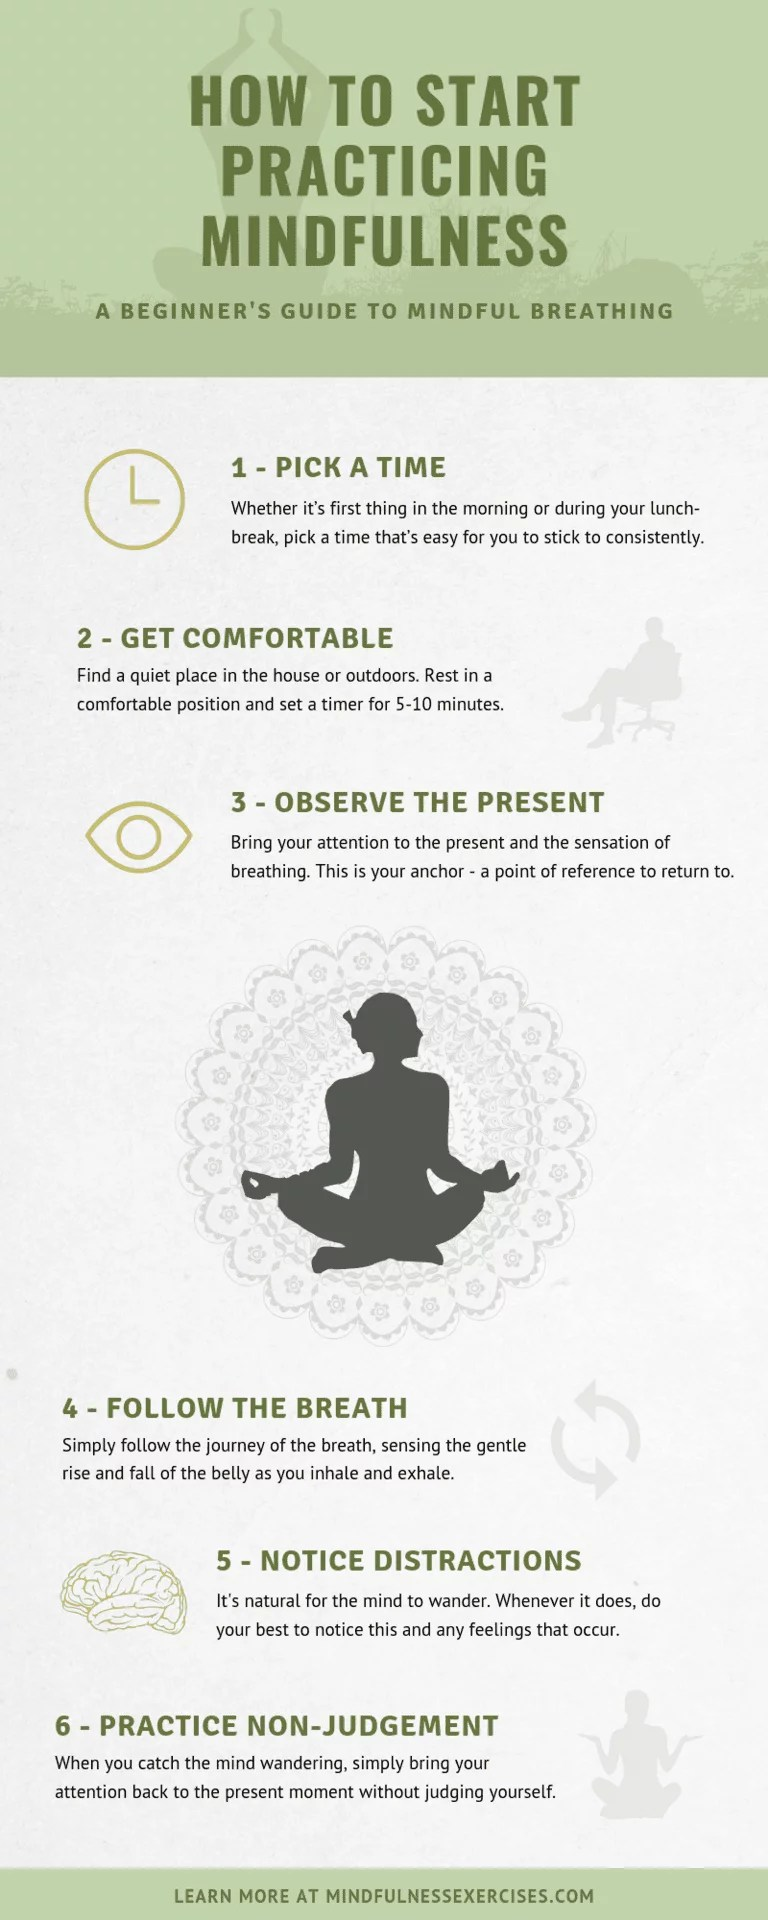 8 Mindfulness Exercises for Beginners (+Infographic) How To Start Practicing Mindfulness